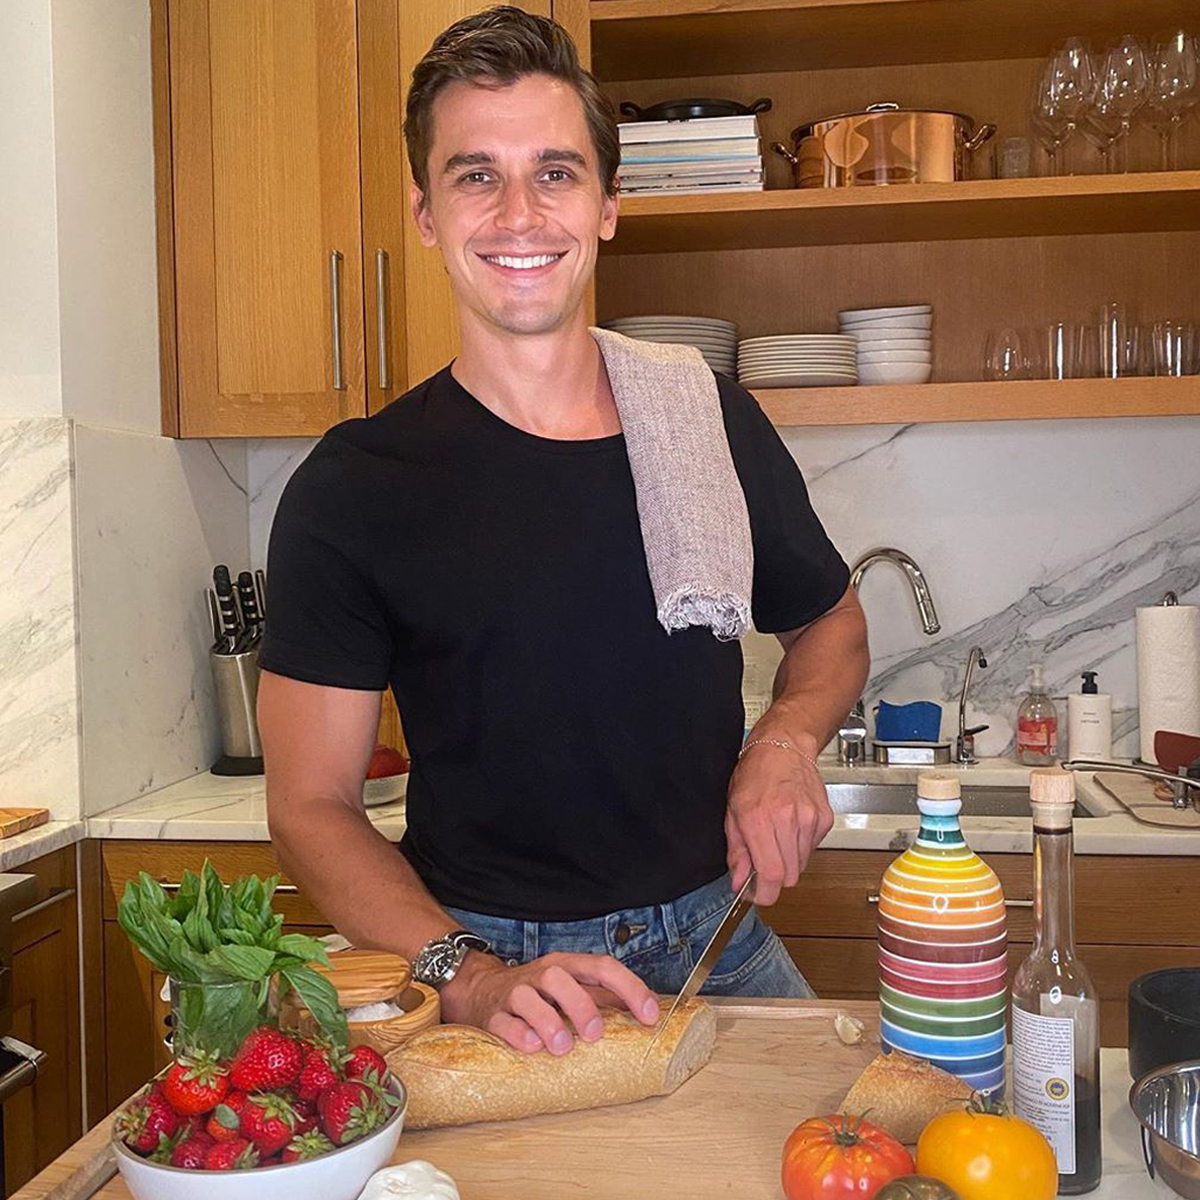 Learn How Antoni Porowski Makes a Summery Bruschetta & Why He's Embracing Quarantine